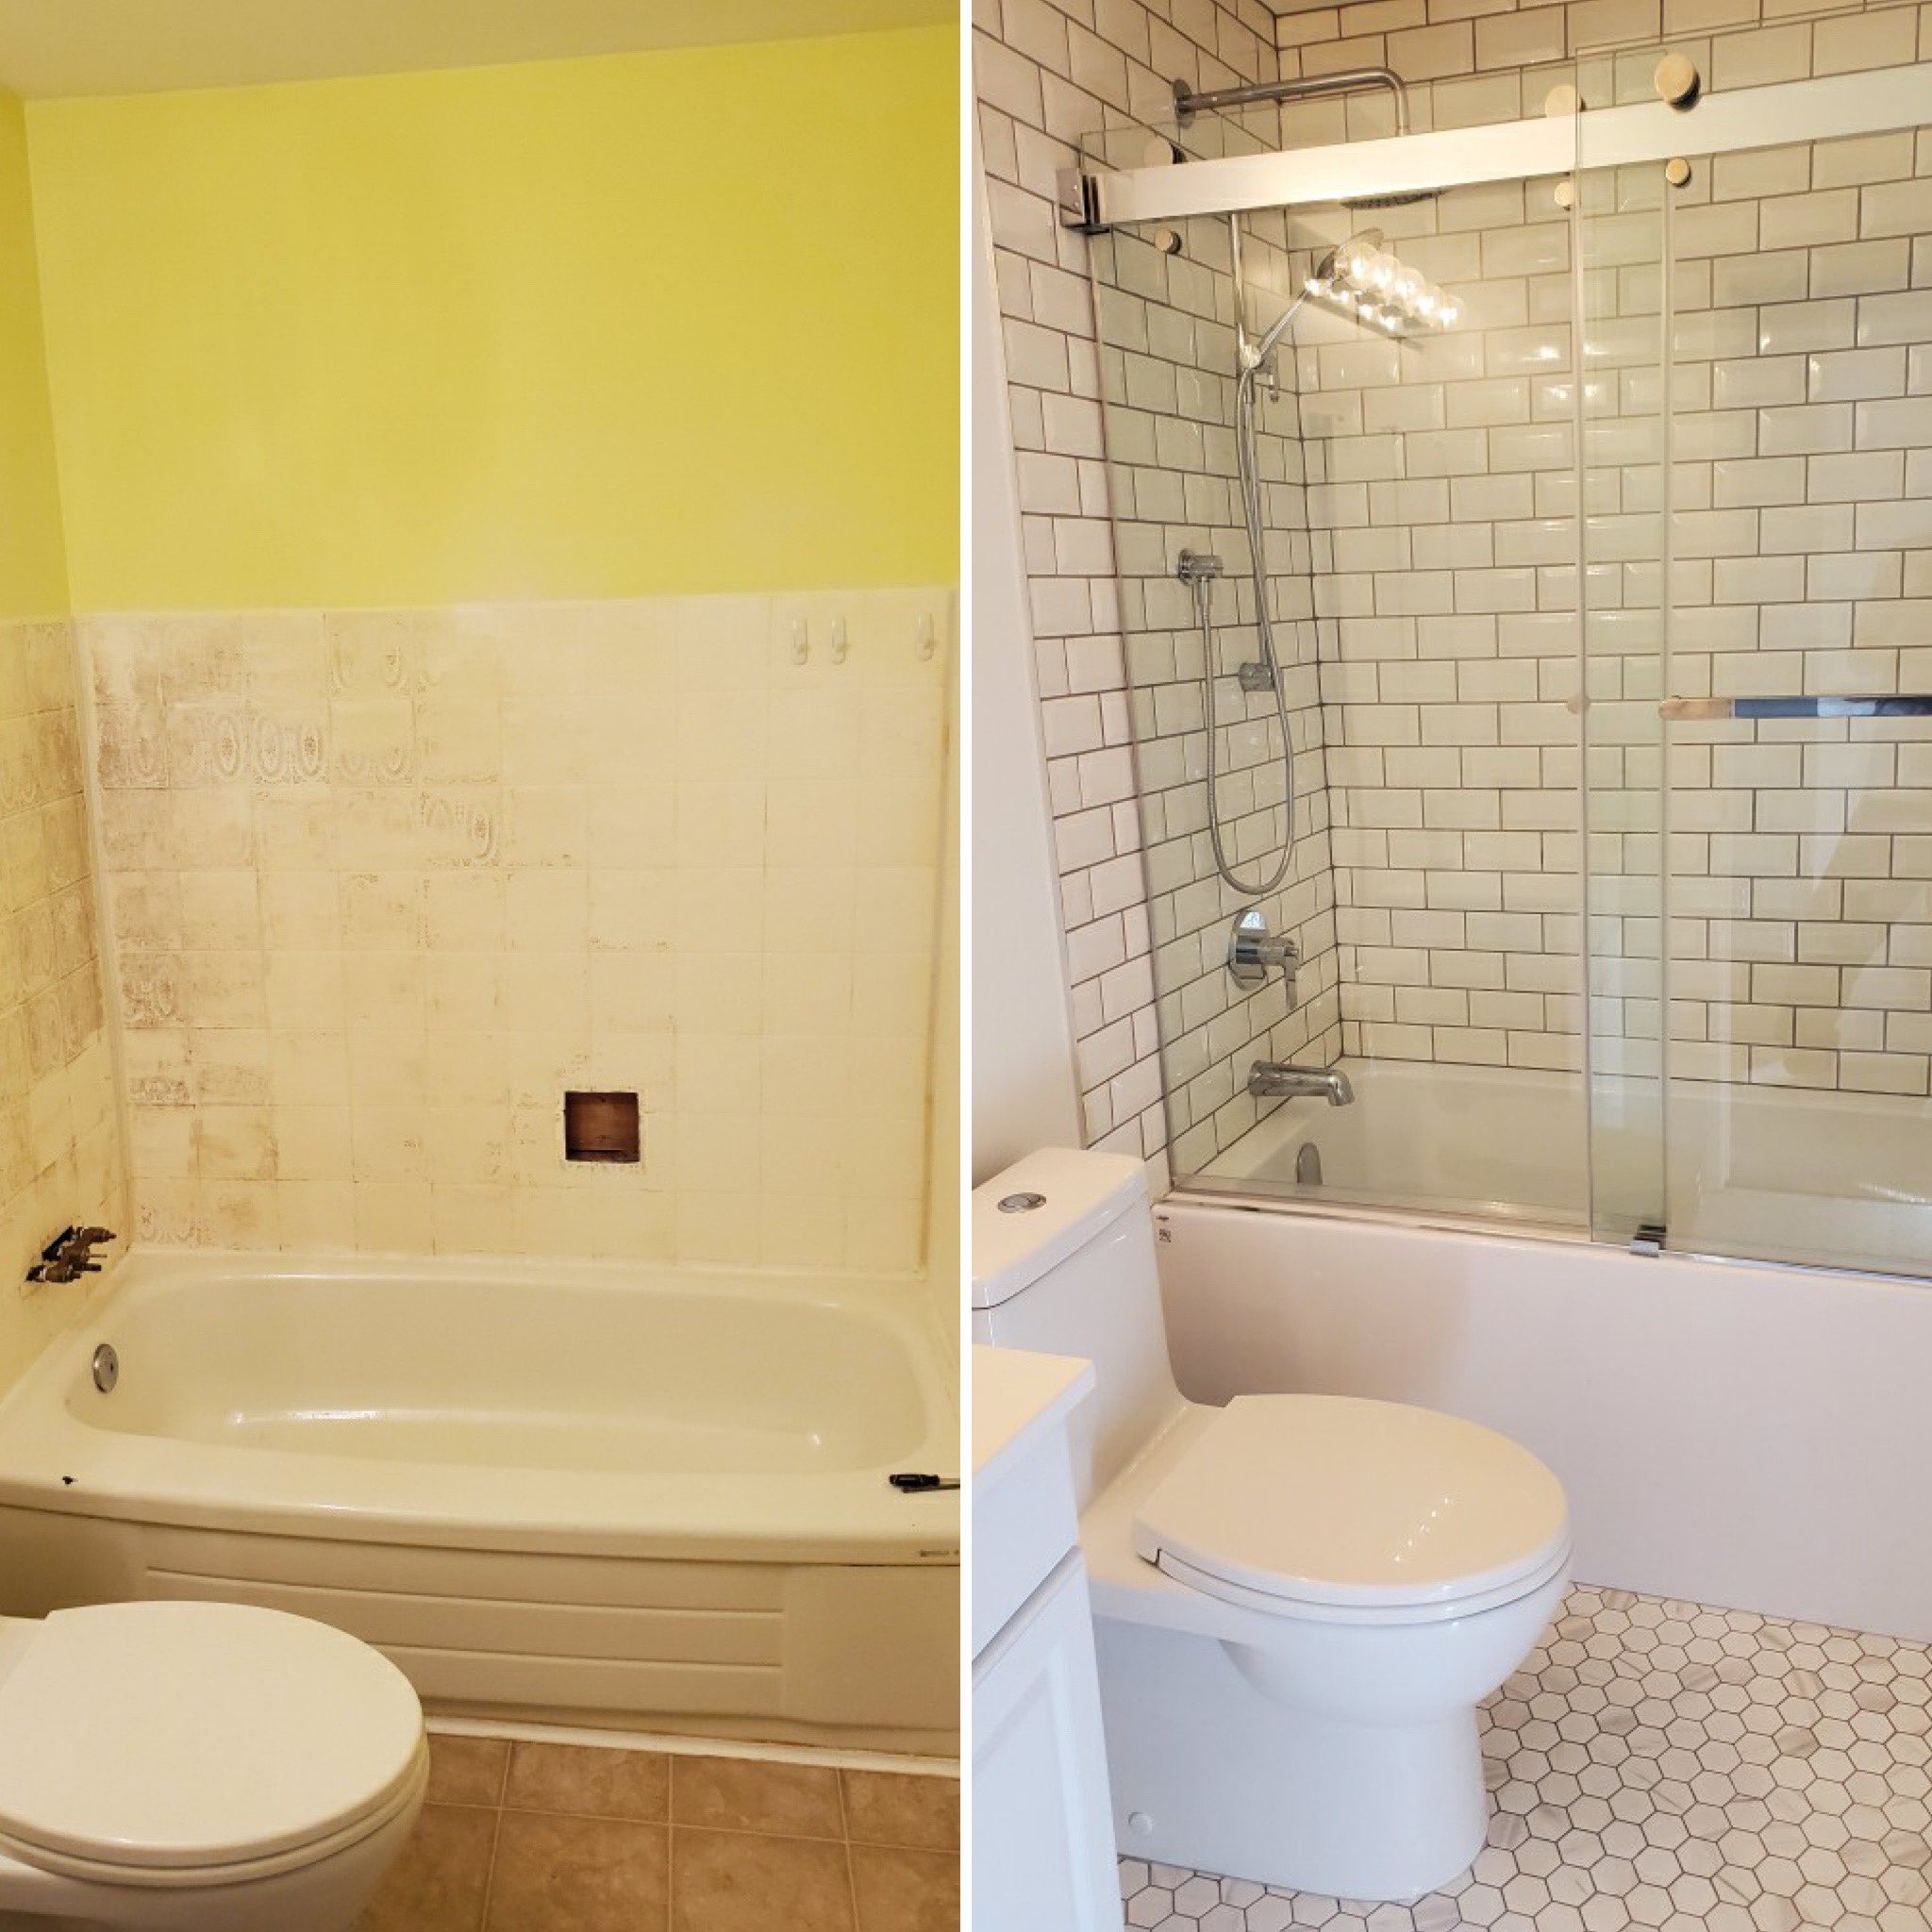 B&L Construction Offers Amazing Transformation of an Average Bathroom in Under Two Weeks